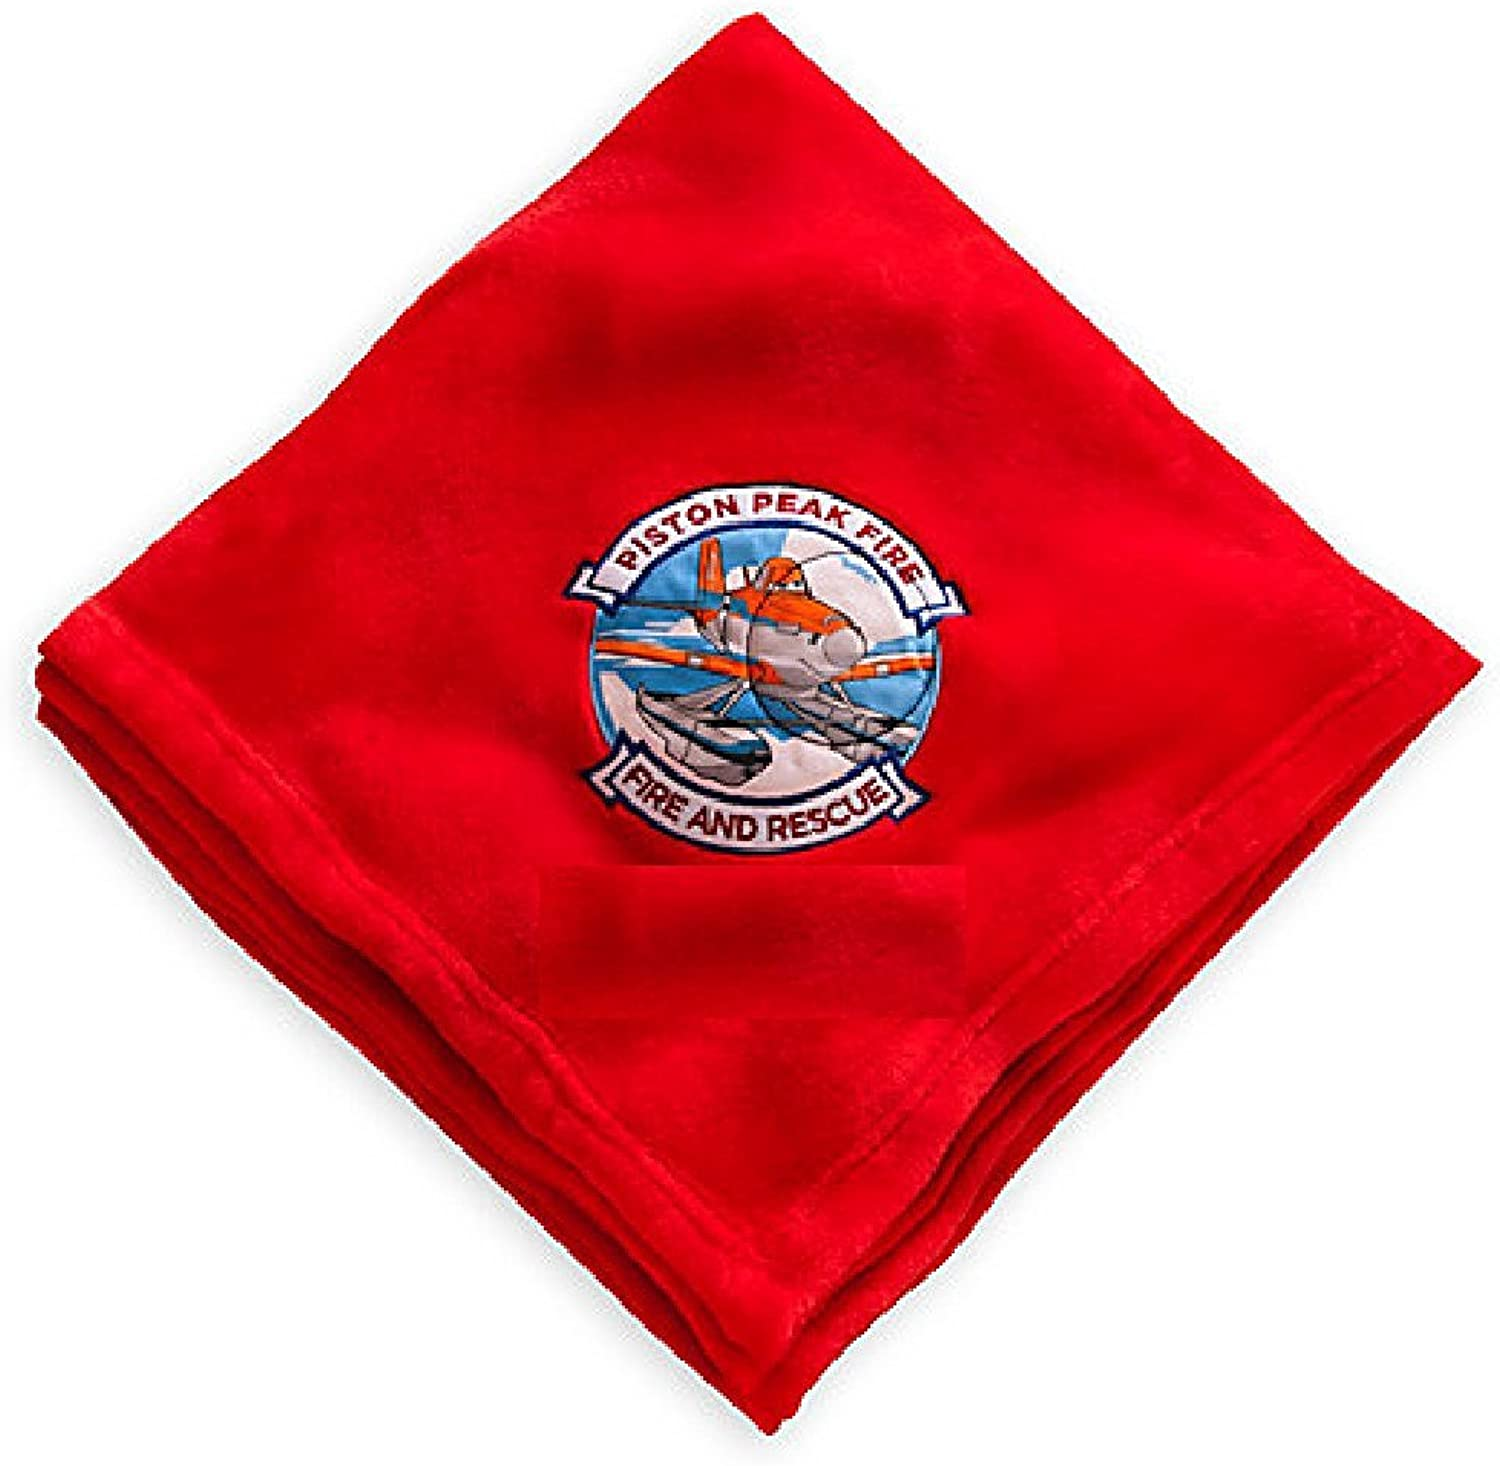 Disney Planes  Fire & Rescue Throw Blanket  Red  50 x 60